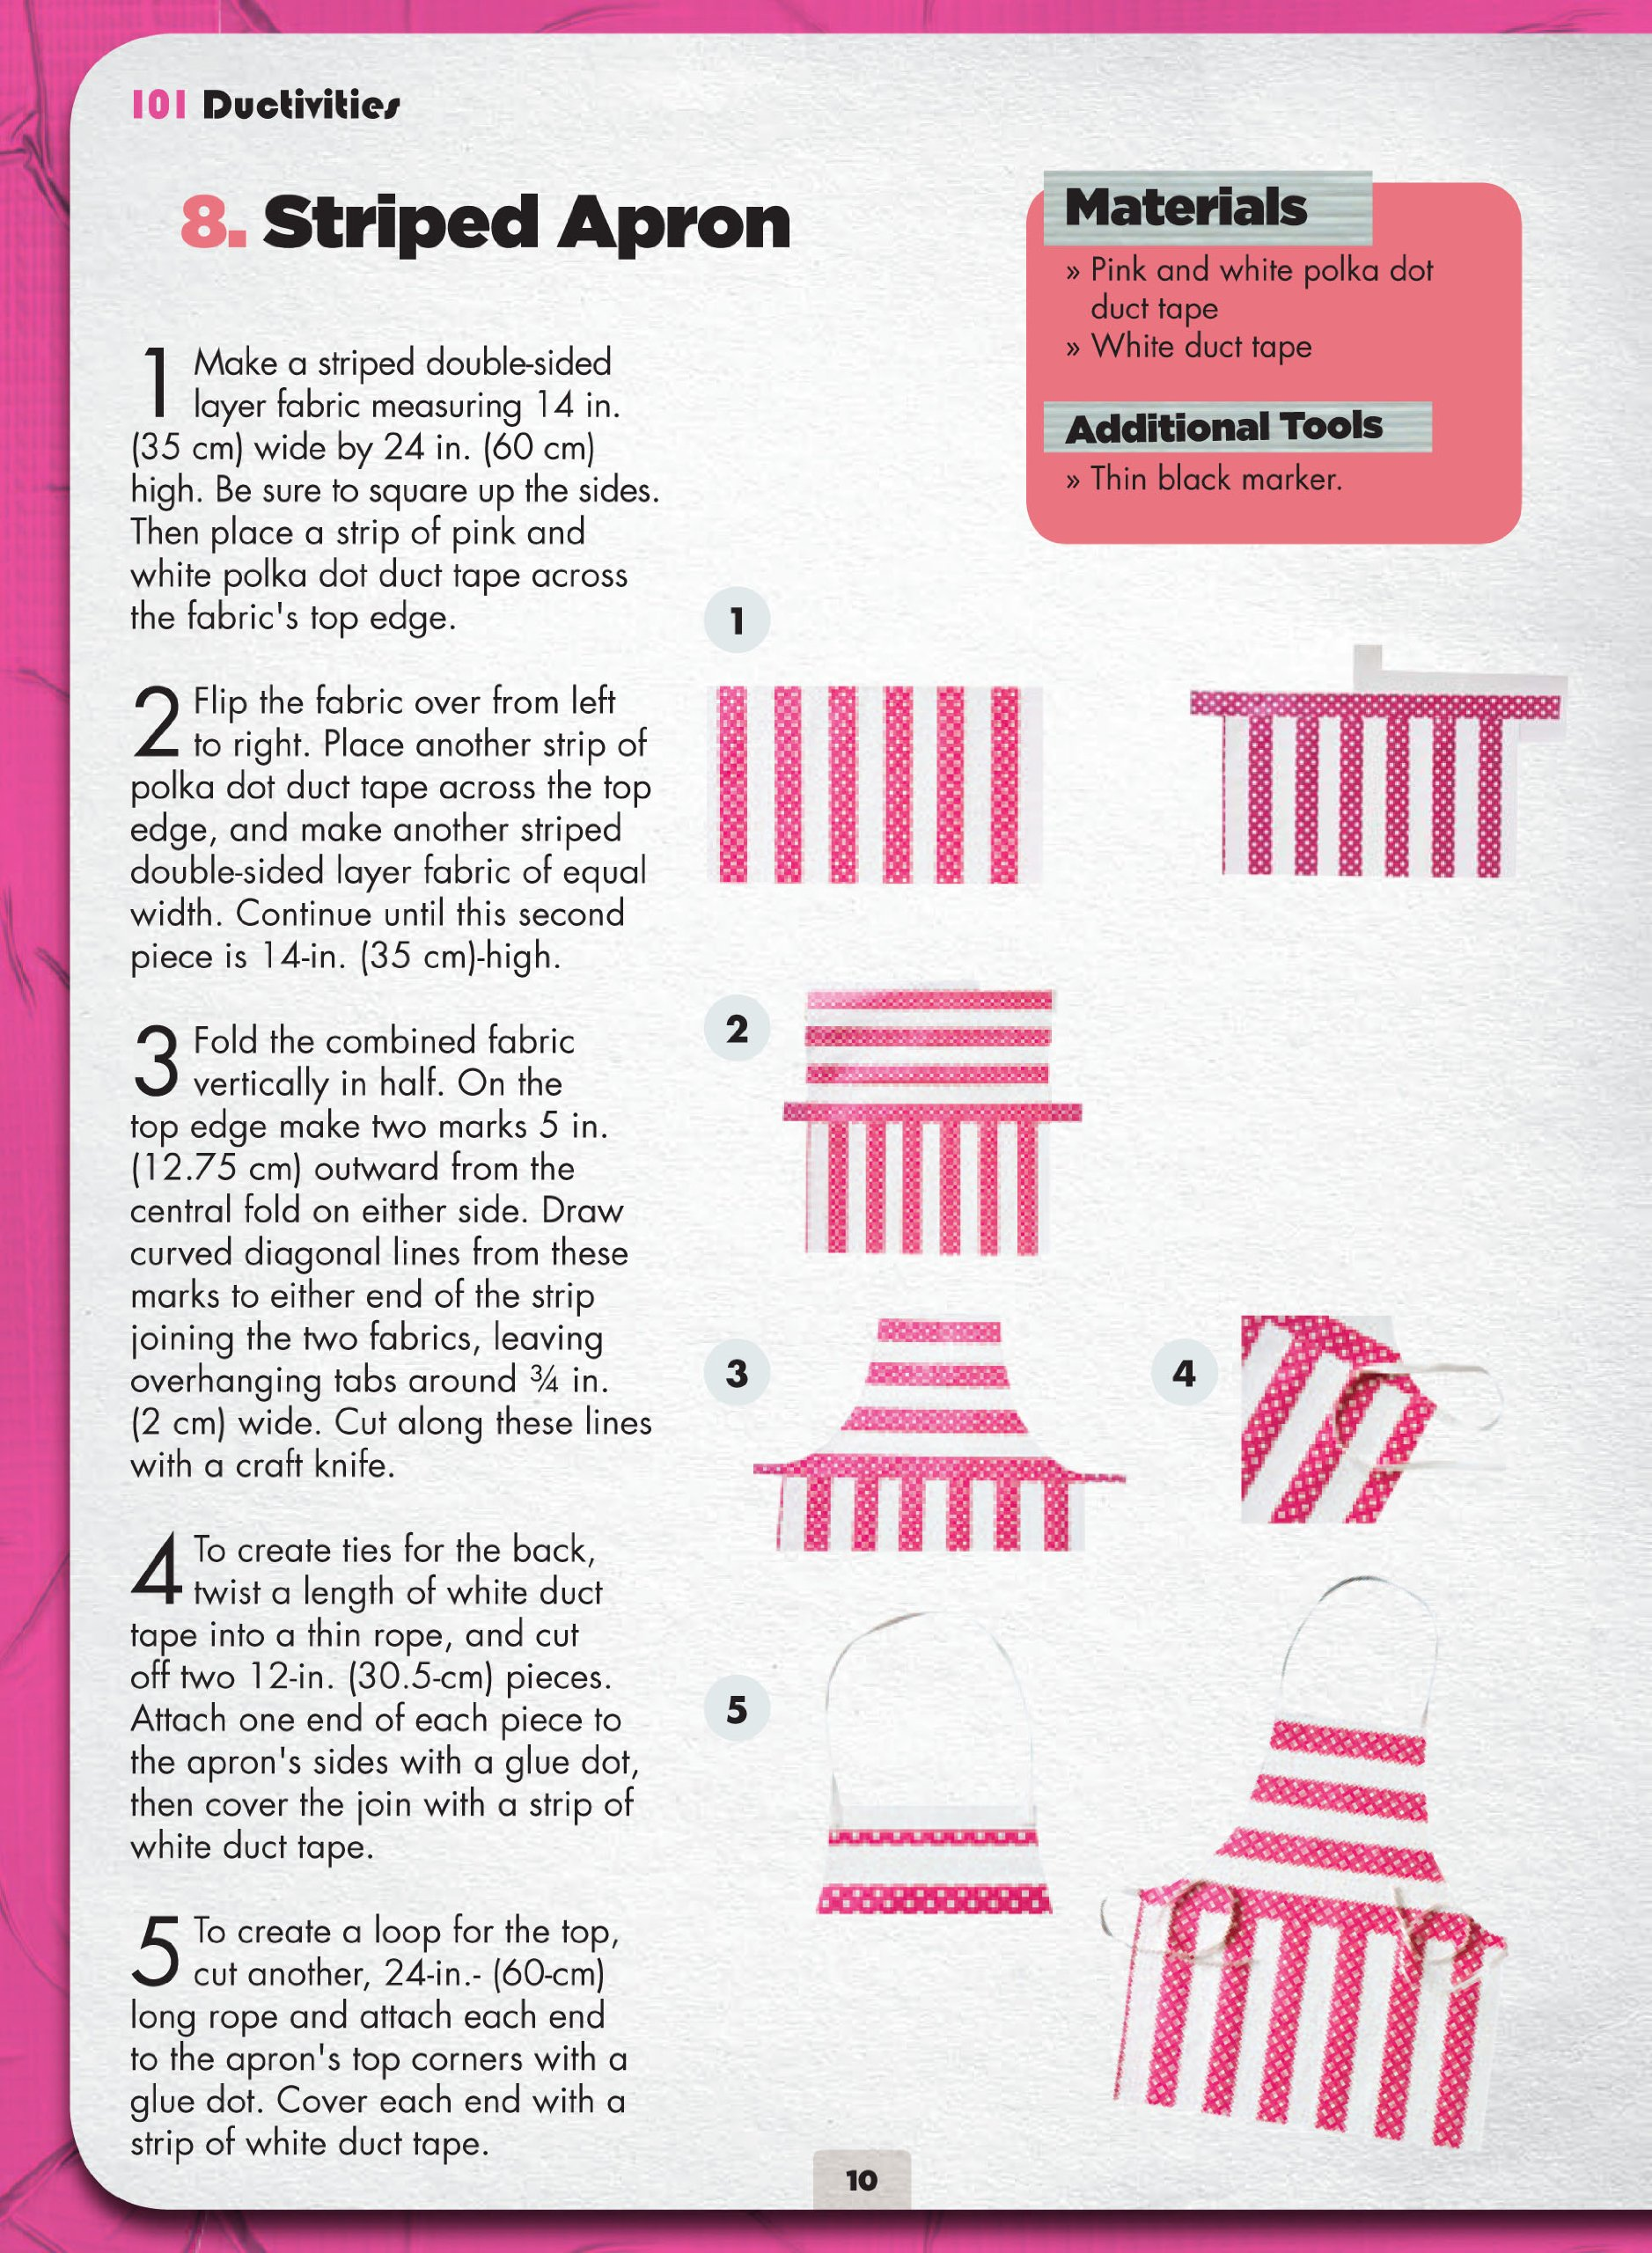 White apron tape - Tape It Make It 101 Duct Tape Activities Tape It And Duct Tape Series Richela Fabian Morgan 9781438001357 Amazon Com Books